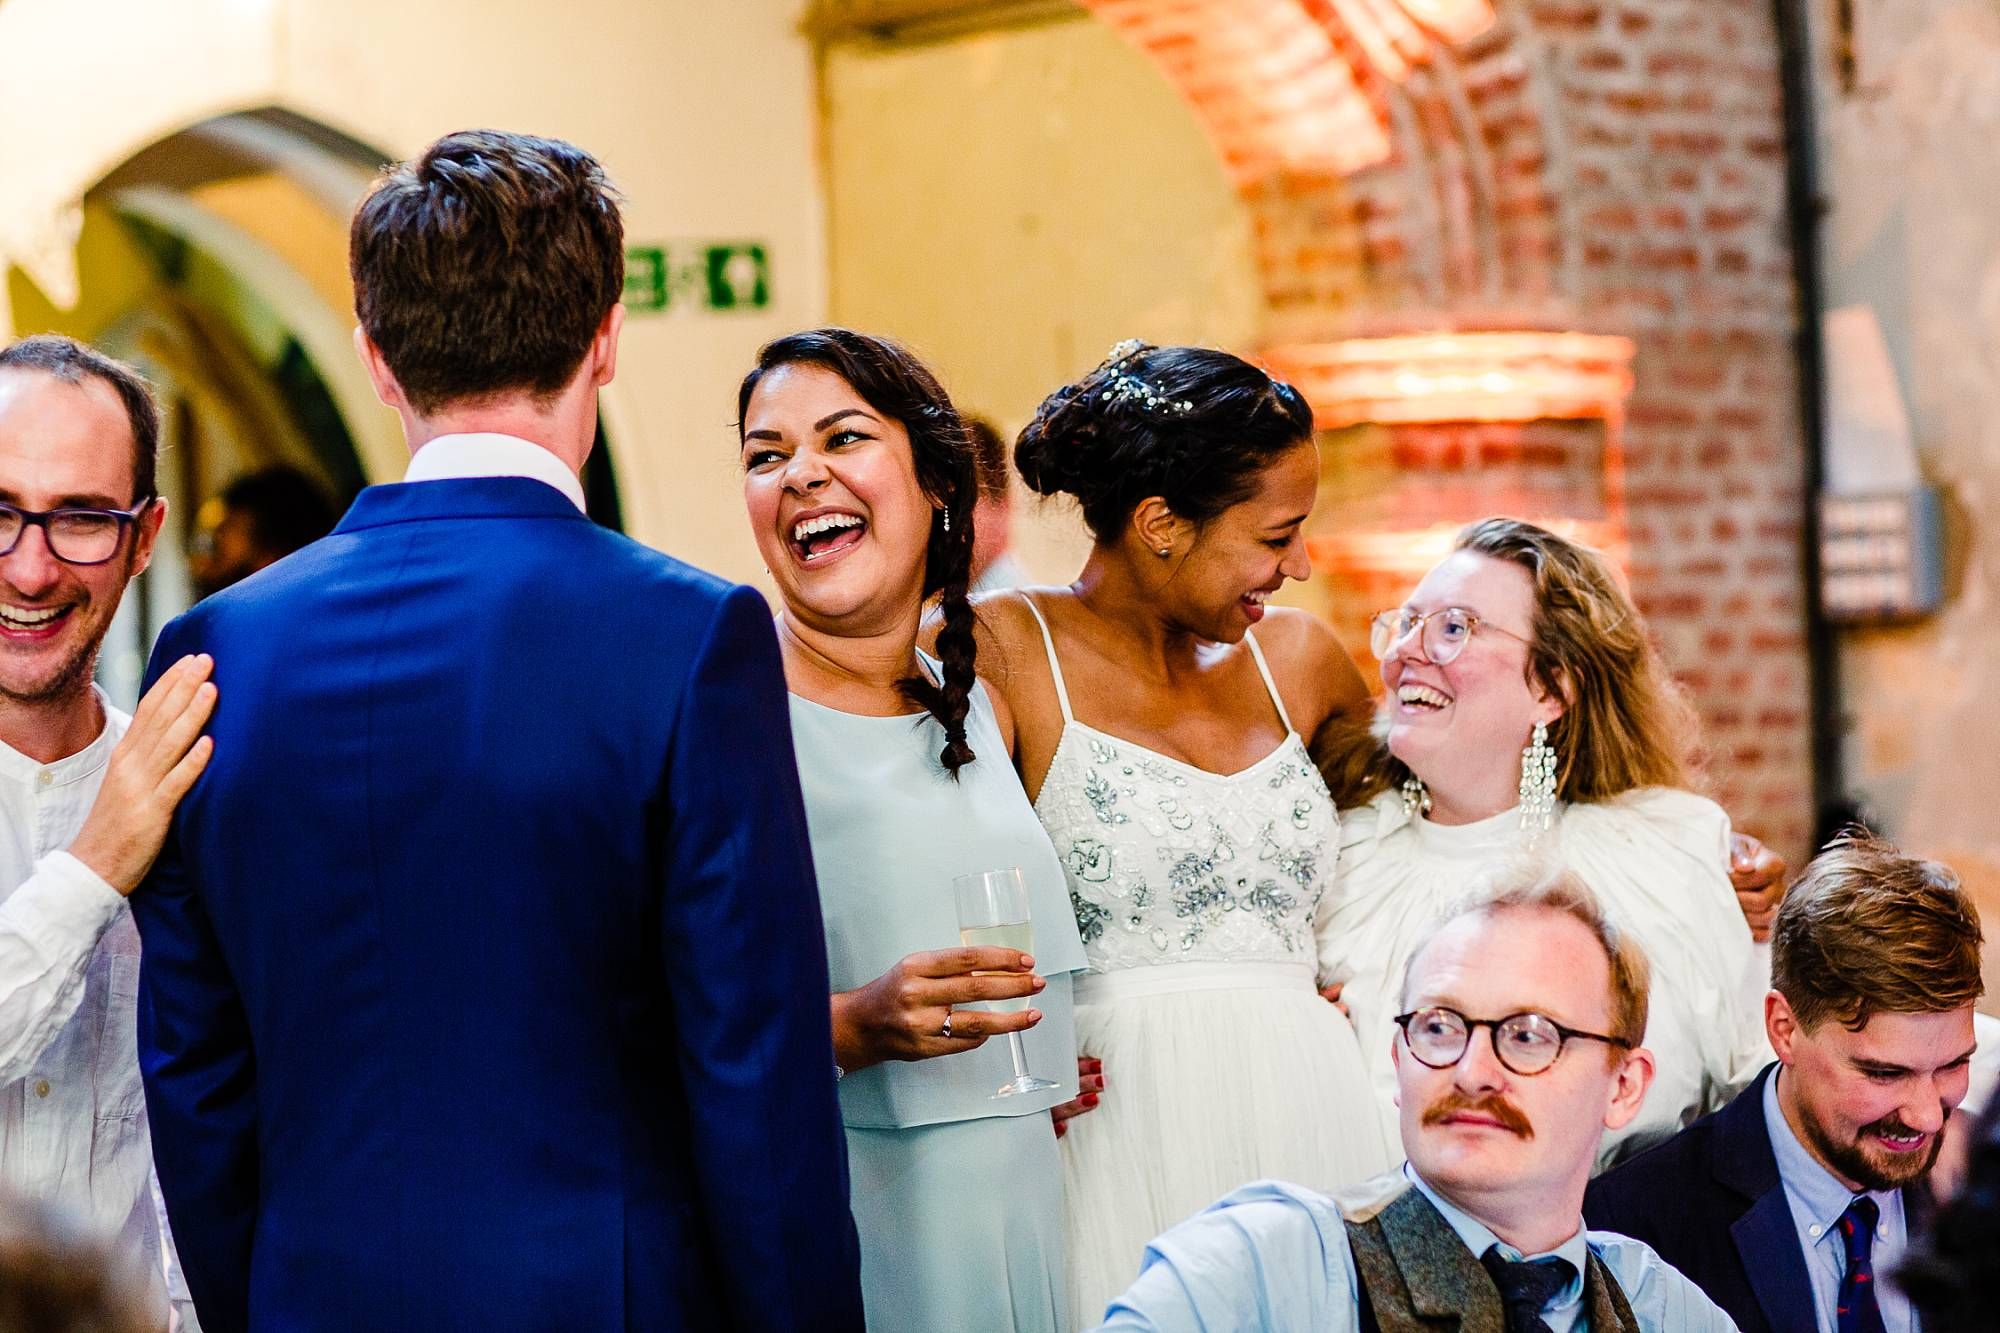 The Old Church London Wedding Photographer_0090.jpg